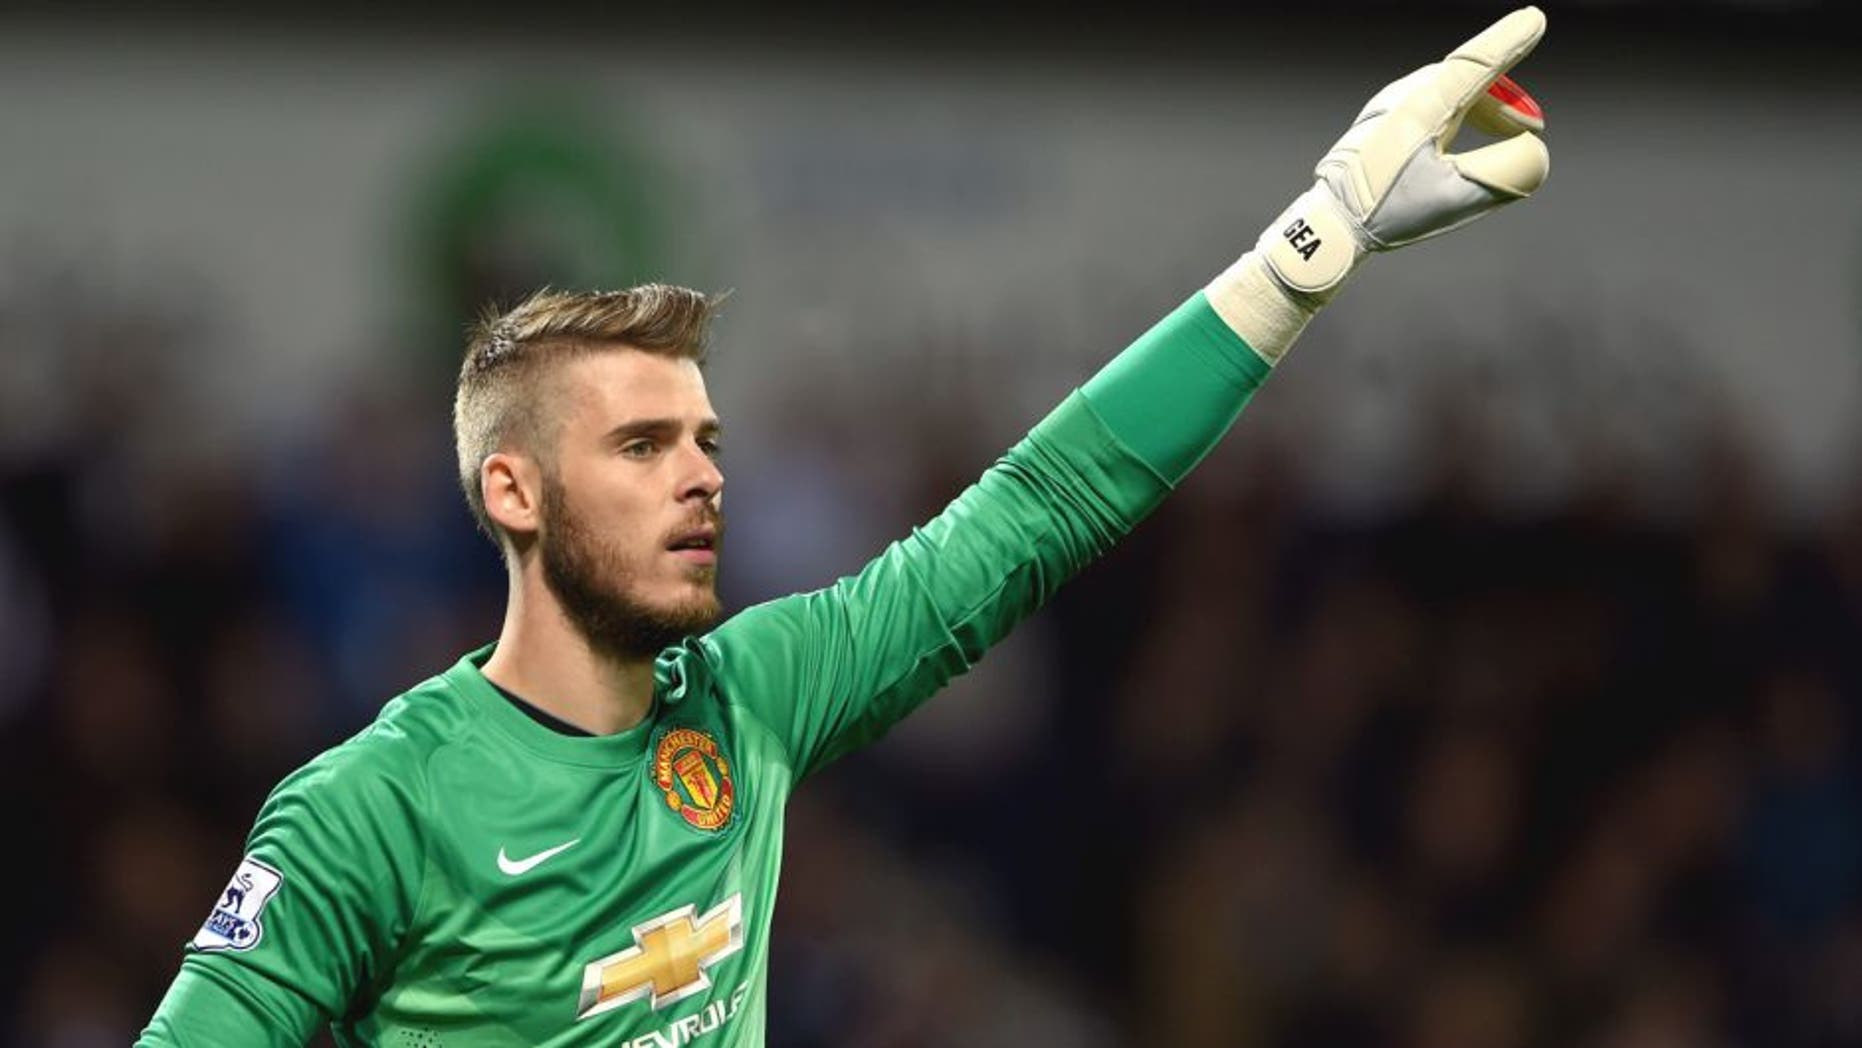 WEST BROMWICH, ENGLAND - OCTOBER 20: David De Gea of Manchester United in action during the Barclays Premier League match between West Bromwich Albion and Manchester United at The Hawthorns on October 20, 2014 in West Bromwich, England. (Photo by Michael Regan/Getty Images)